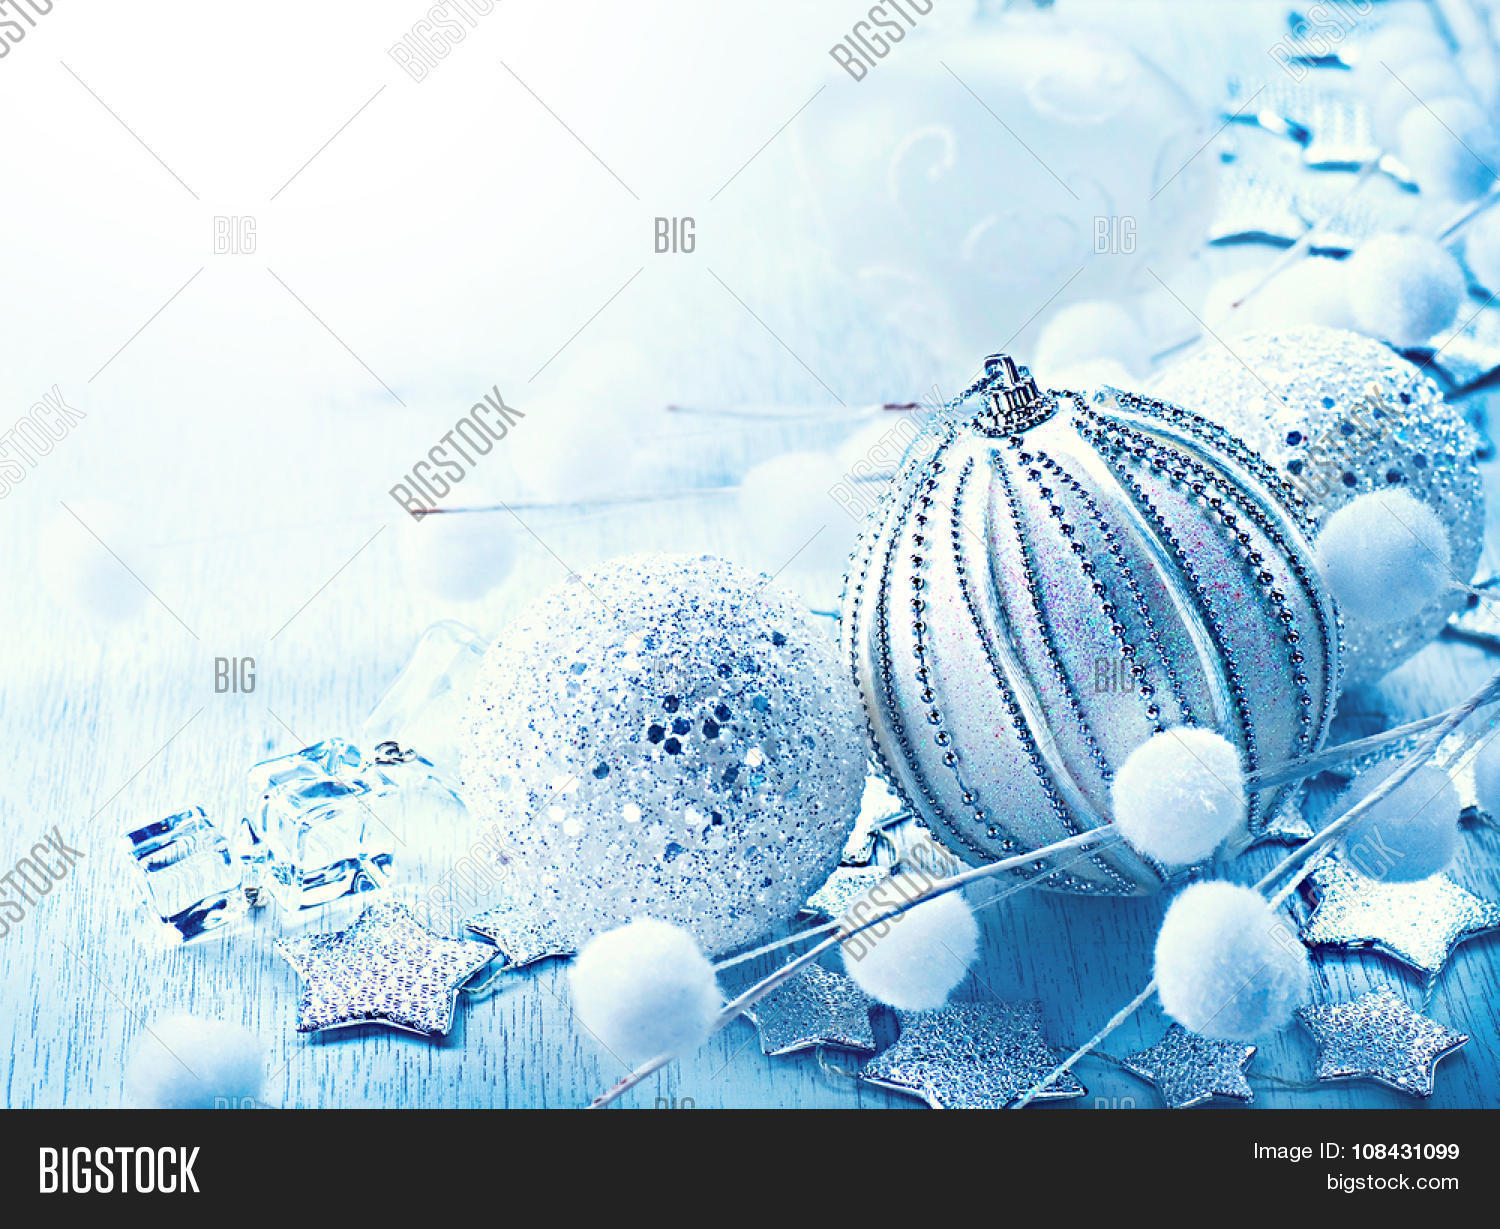 Christmas  Christmas Image   Photo  Free Trial    Bigstock Christmas and New Year Bauble and Decoration border design  Holiday  Composition  Blue